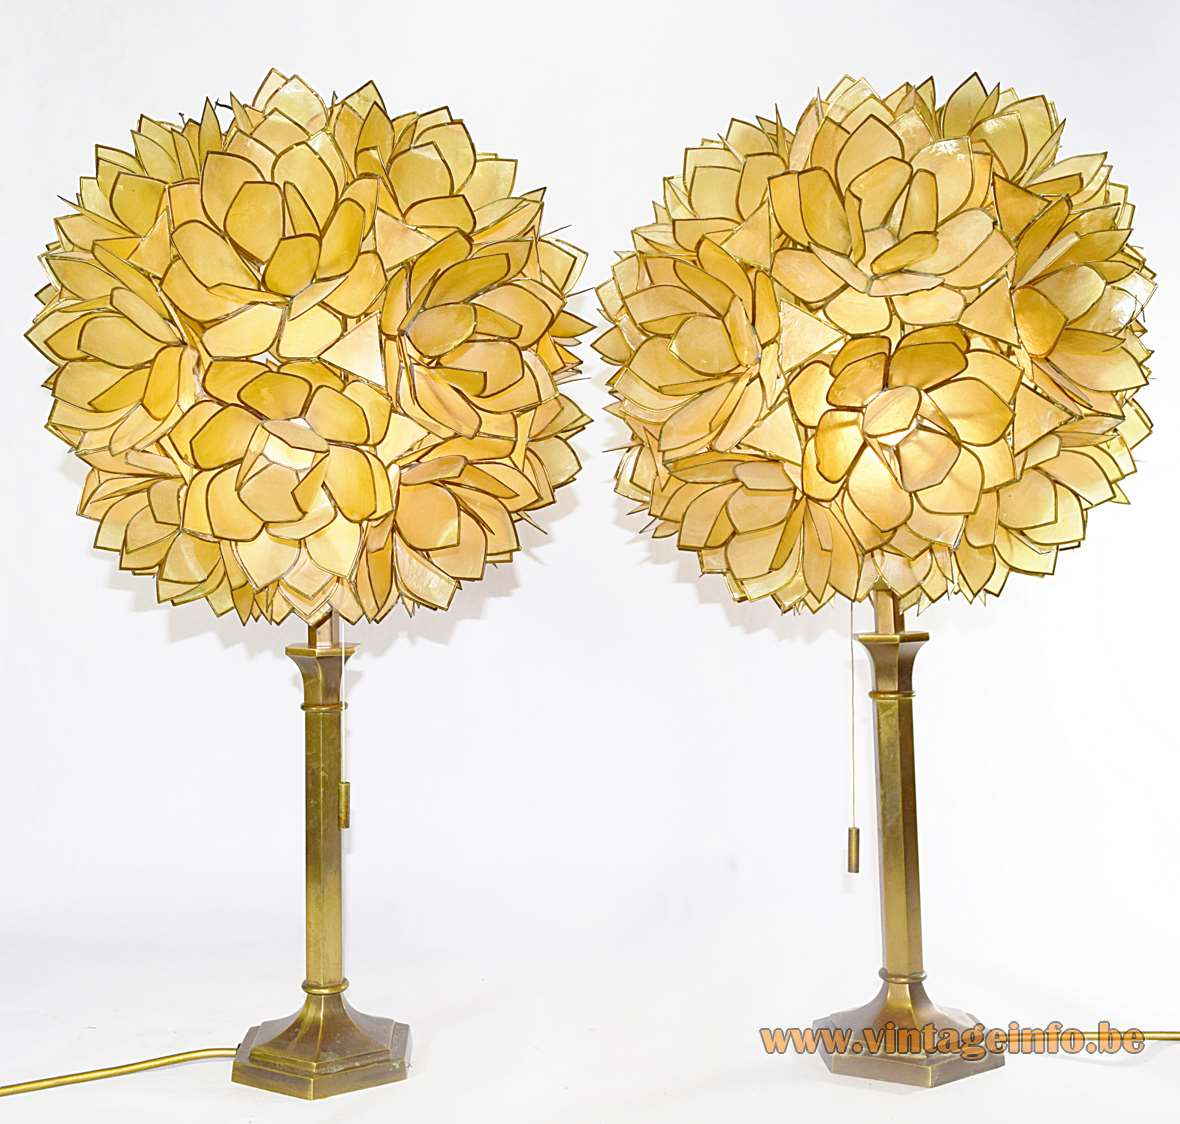 Placuna Placenta Table Lamps Capiz Shells windowpane oyster 1960s 1970s Germany Philippines brass